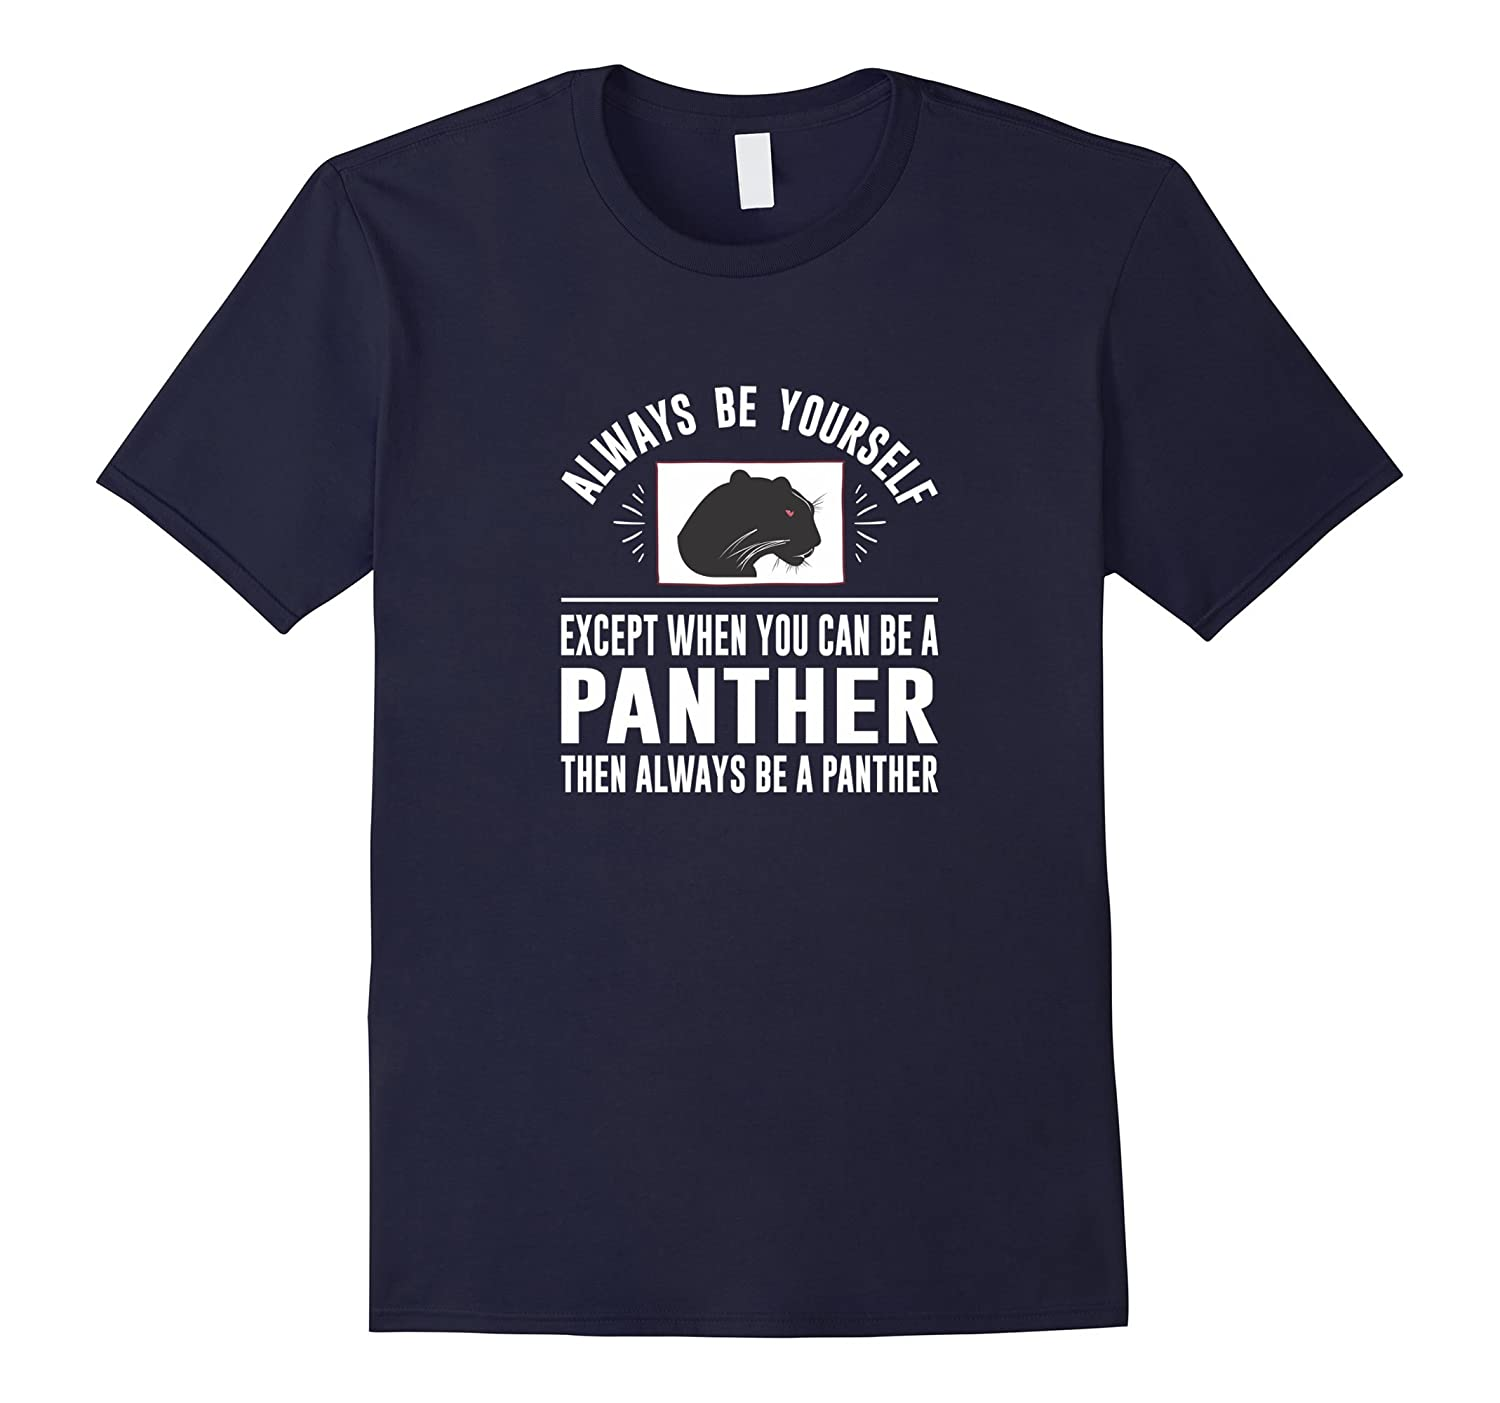 Always Be Yourself - Except When You Can Be a Panther Shirt-Art